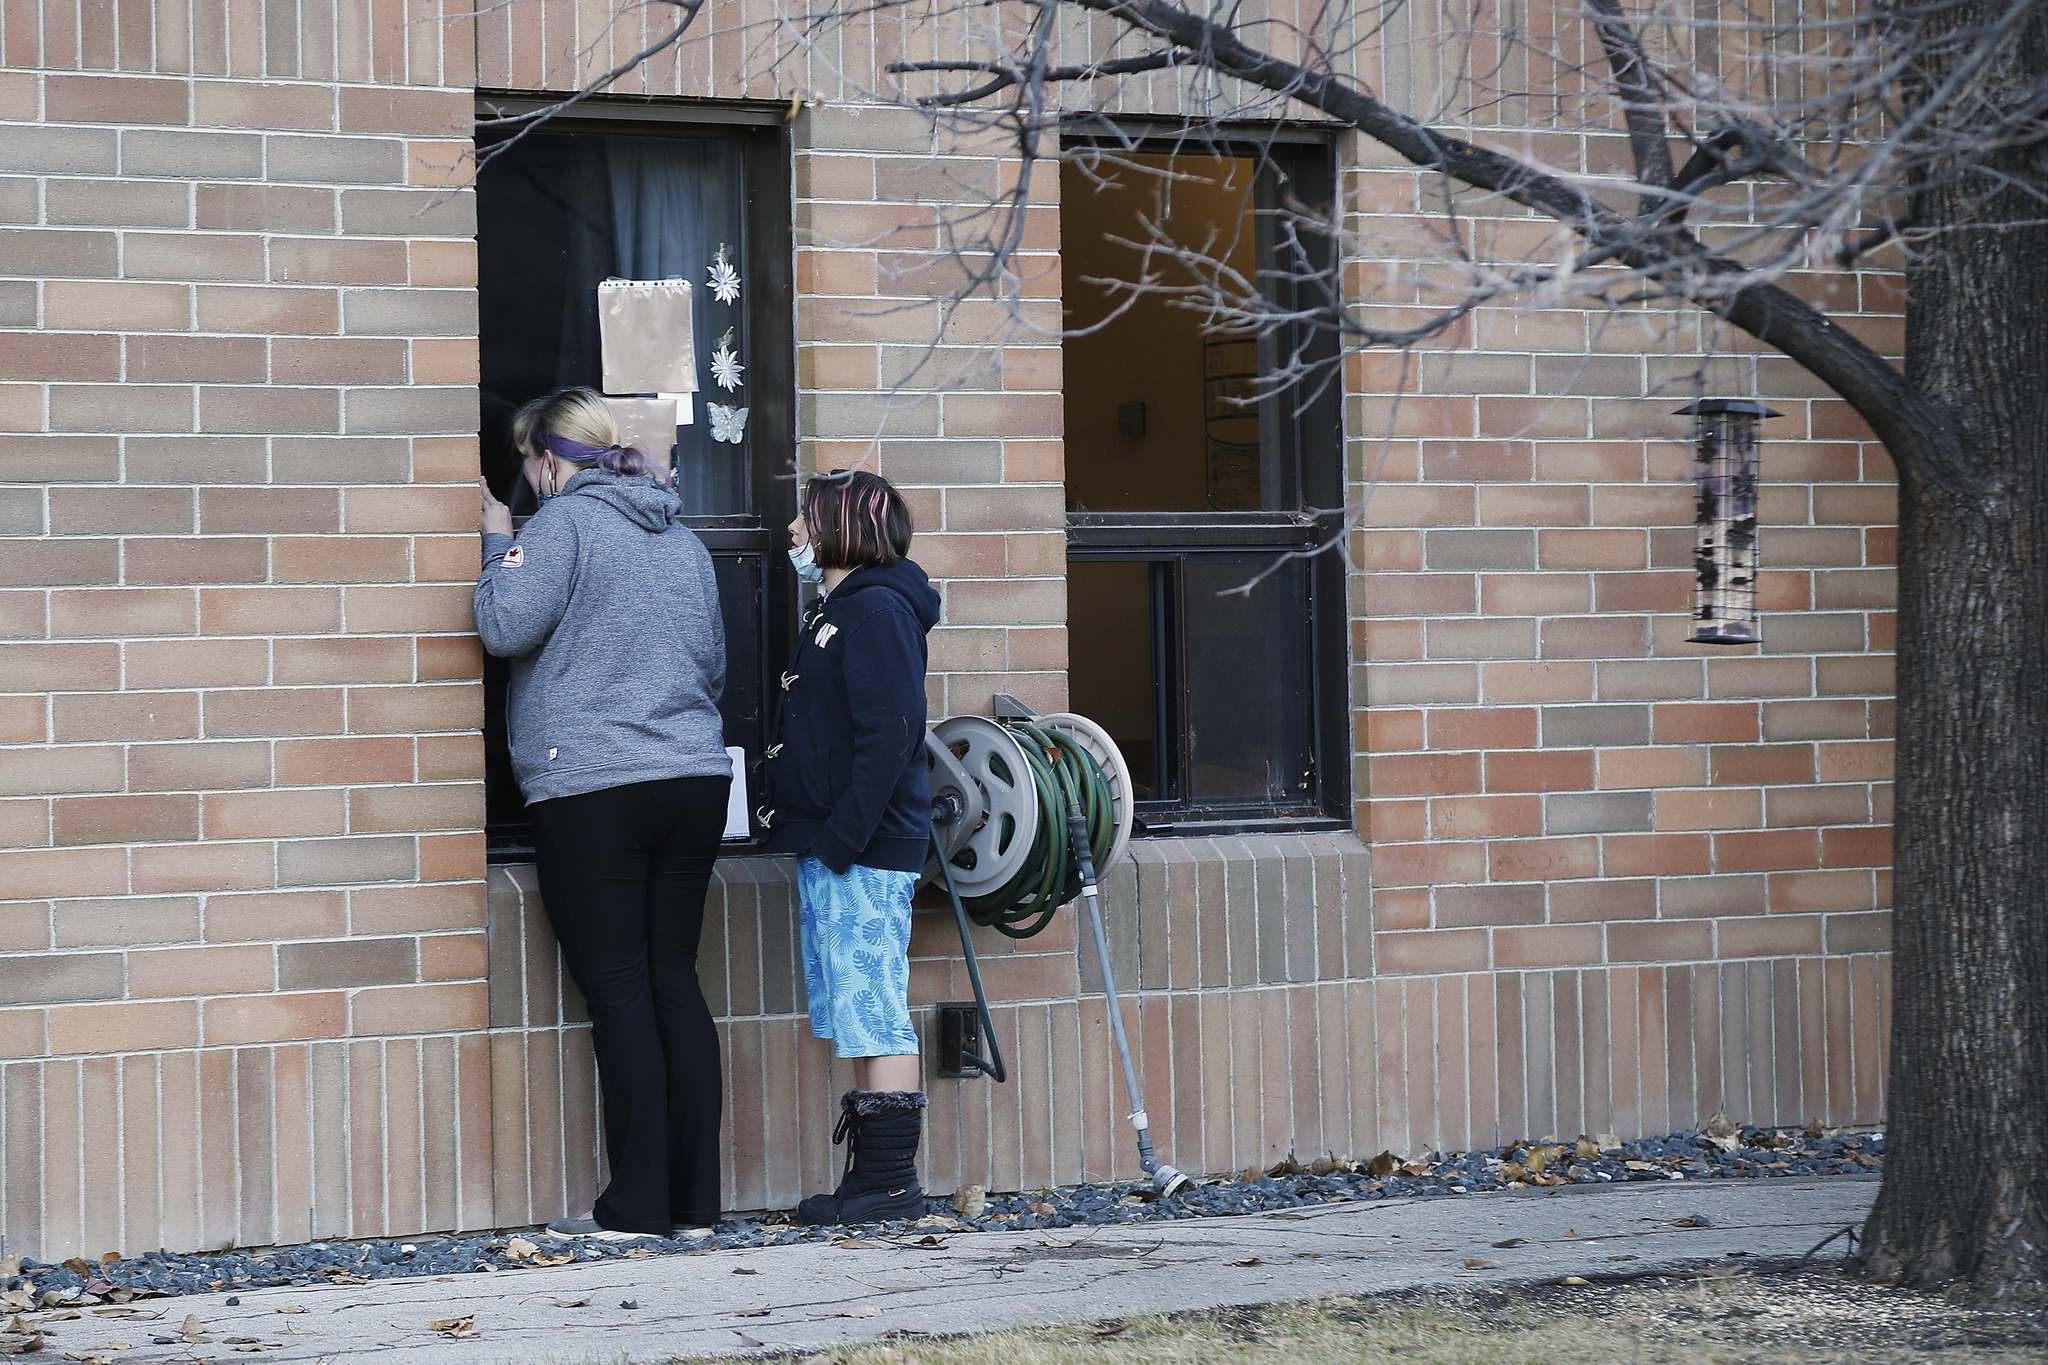 People talk to a resident at Maples Personal Care Home in Winnipeg on Nov. 1. Rachel Herron, a professor at Brandon University, will lead a new research project focused on improving long-term care environments for both aging adults and their caregivers. (Winnipeg Free Press)</p></p>